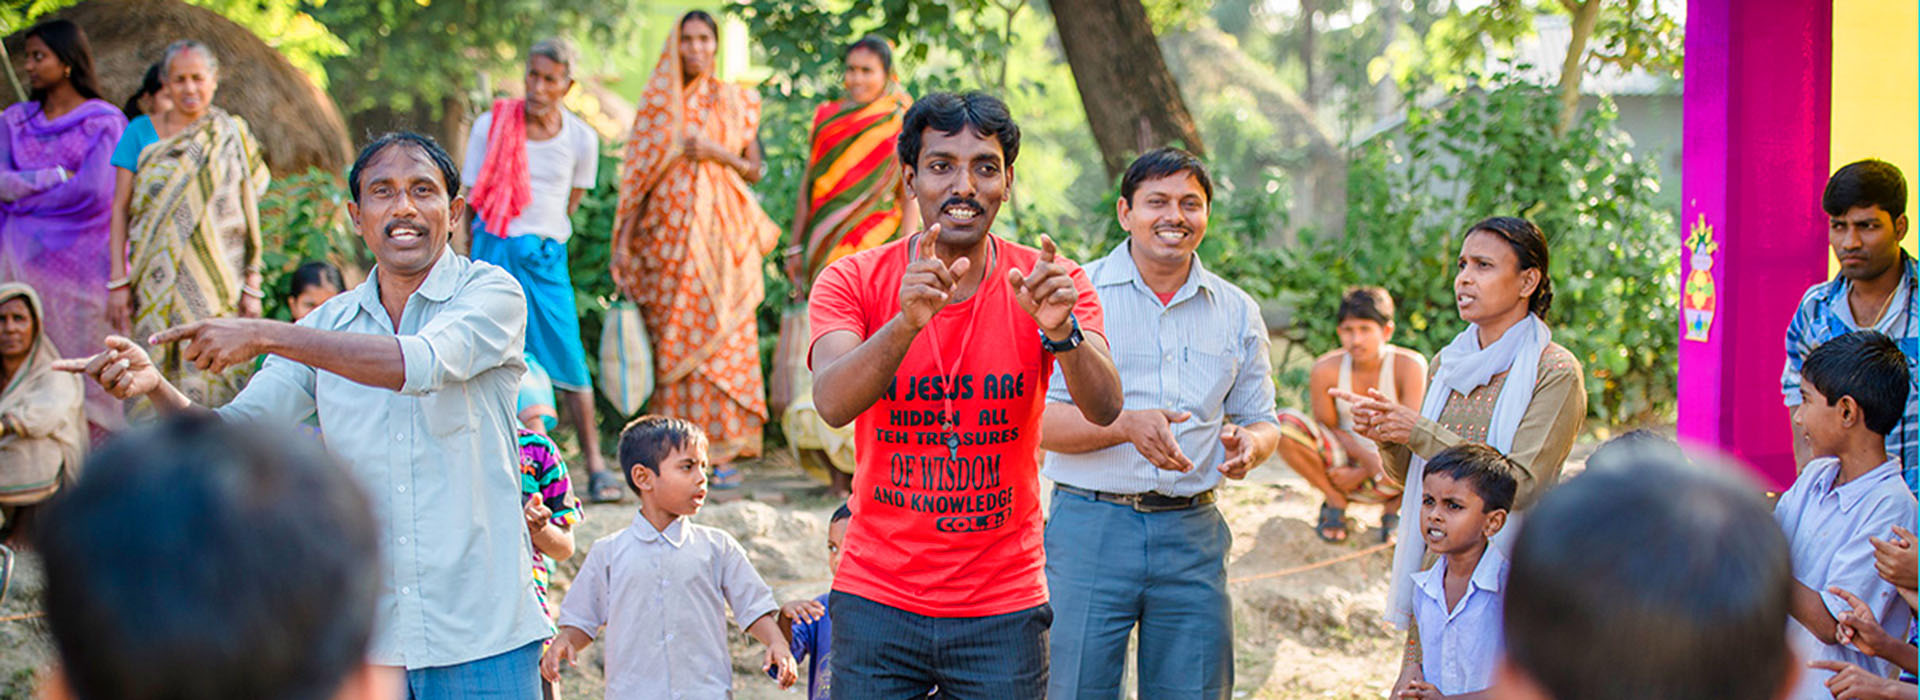 An open air worship/teaching session in India